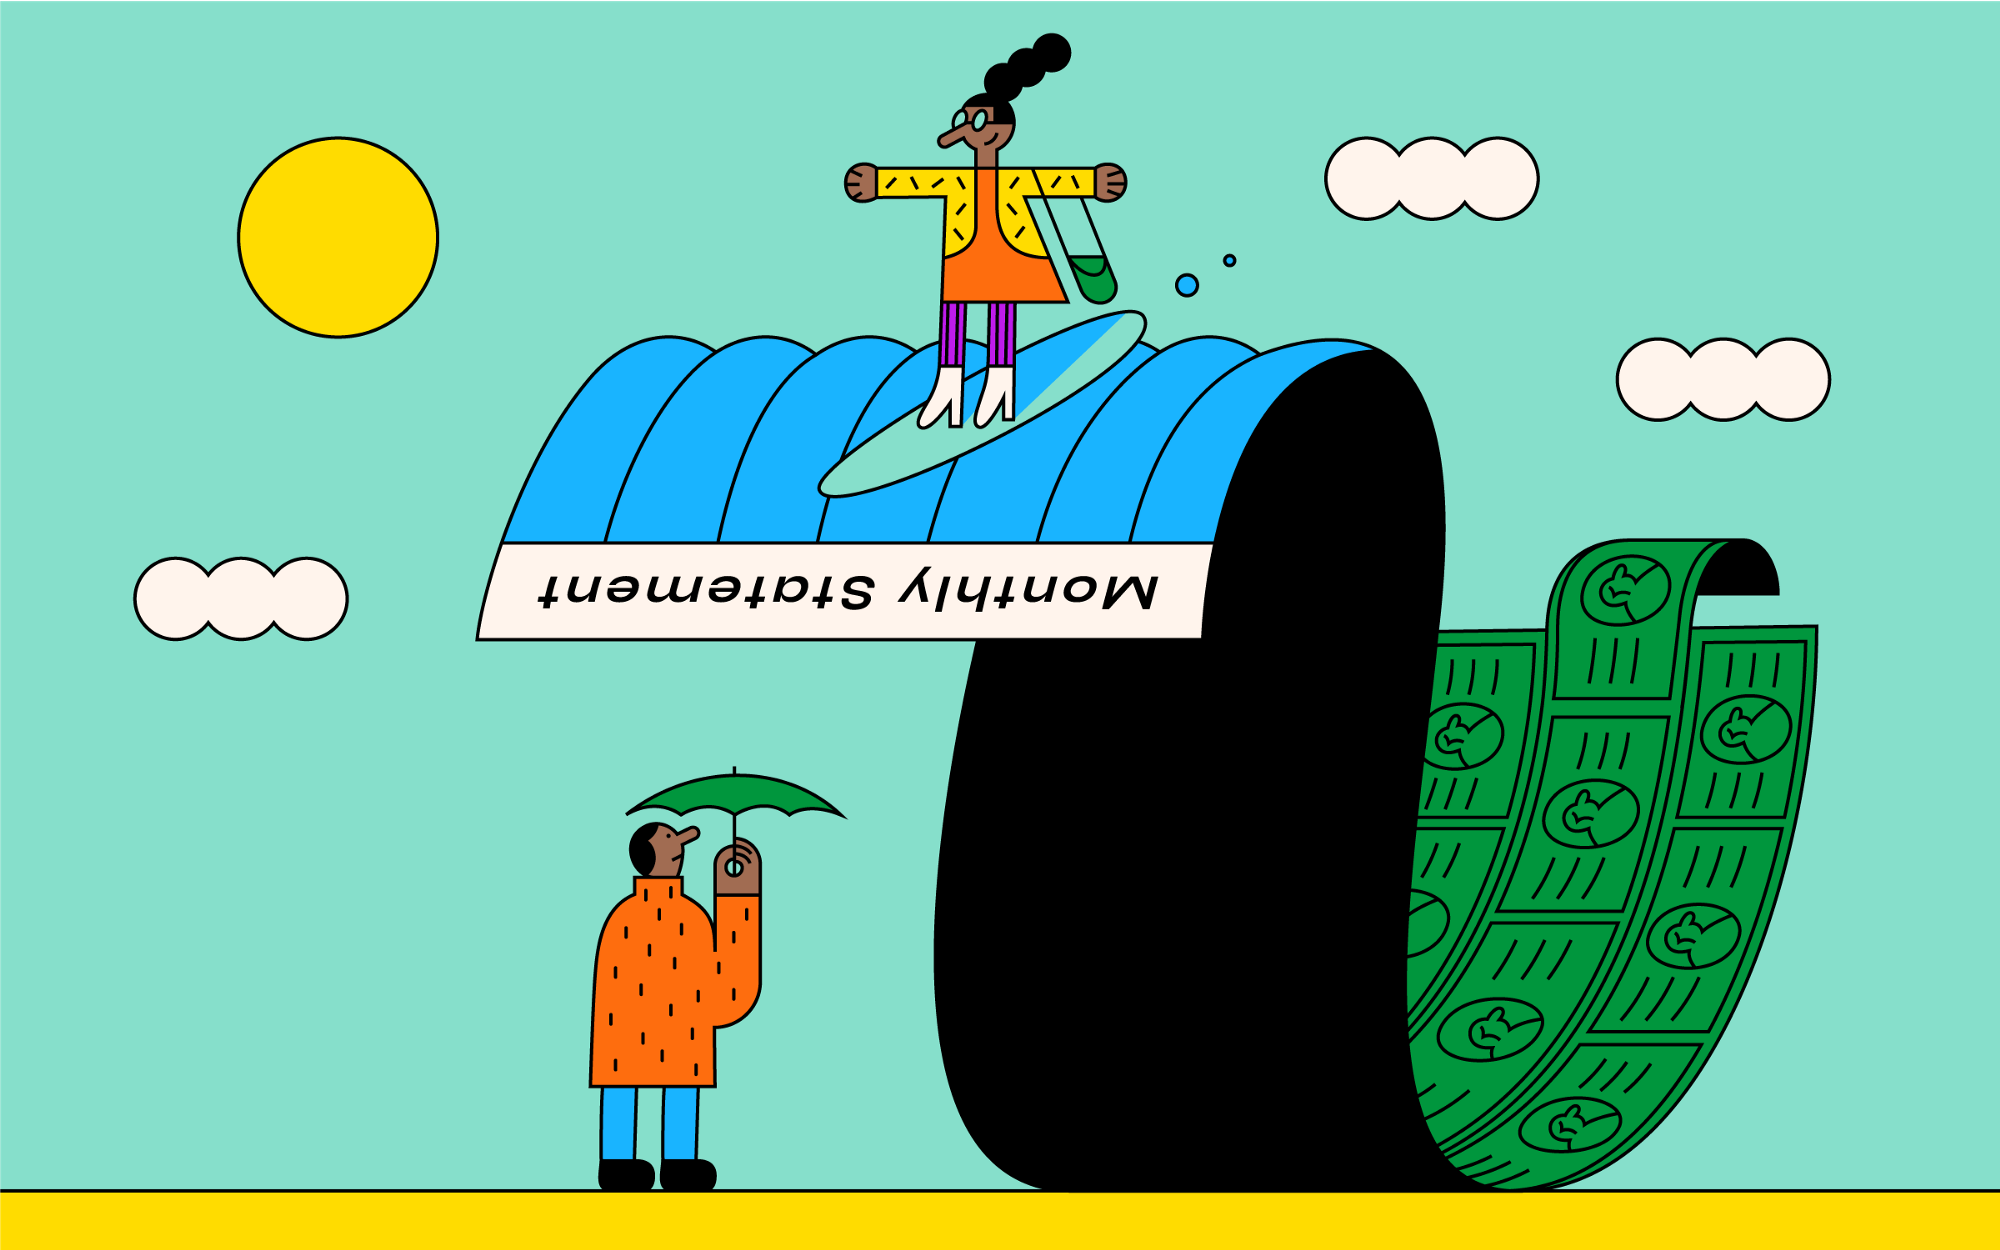 An illustration. A woman rides a wave made of Monthly Statements and money. The woman's husband holds an umbrella underneath.